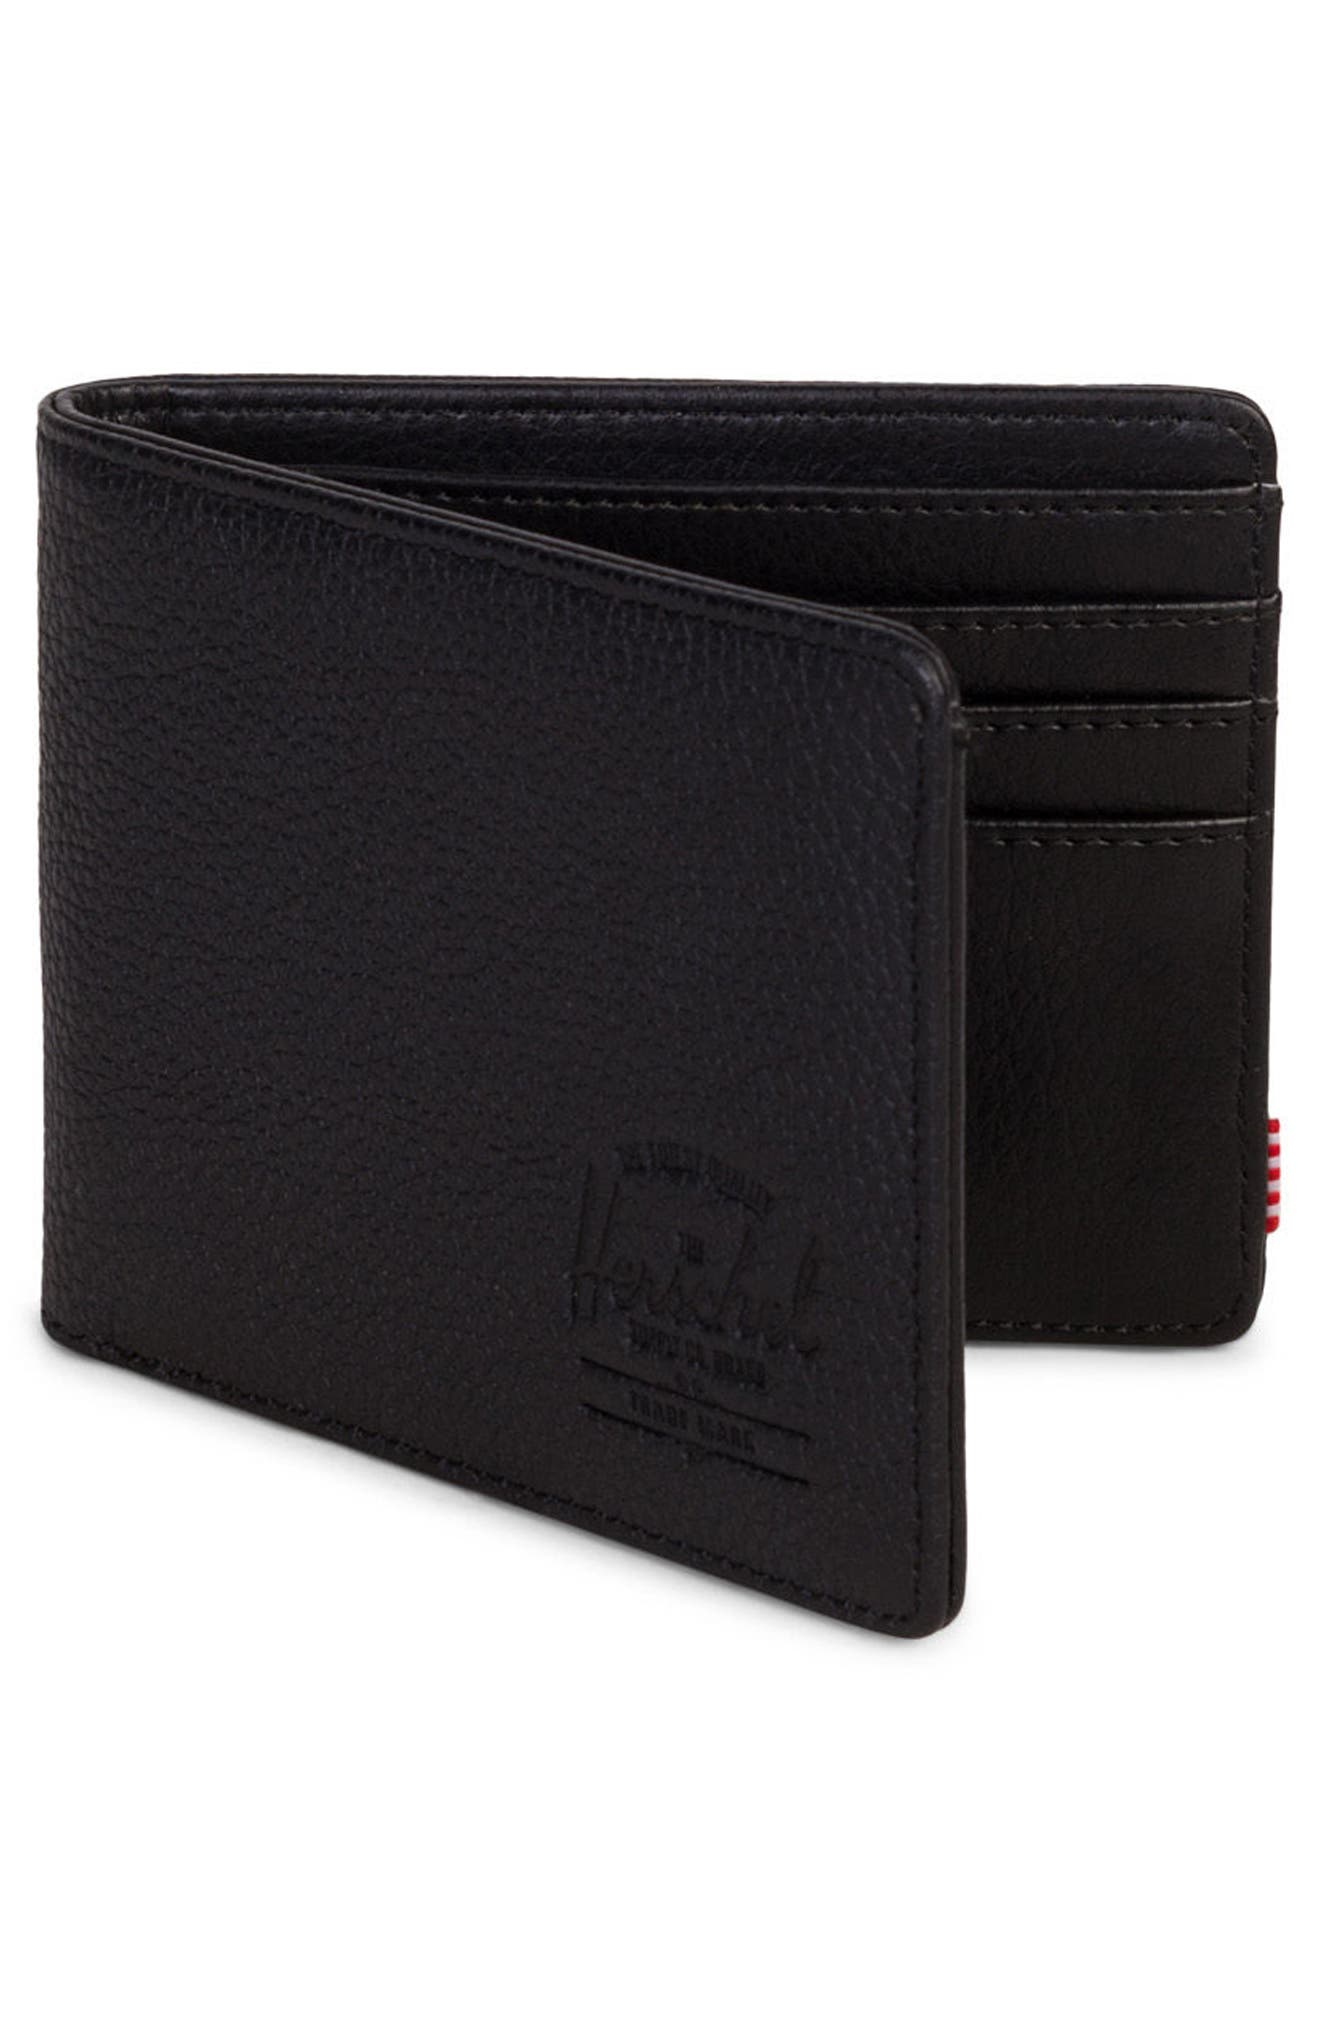 HERSCHEL SUPPLY CO., Hank Leather Wallet, Alternate thumbnail 3, color, BLACK PEBBLED LEATHER